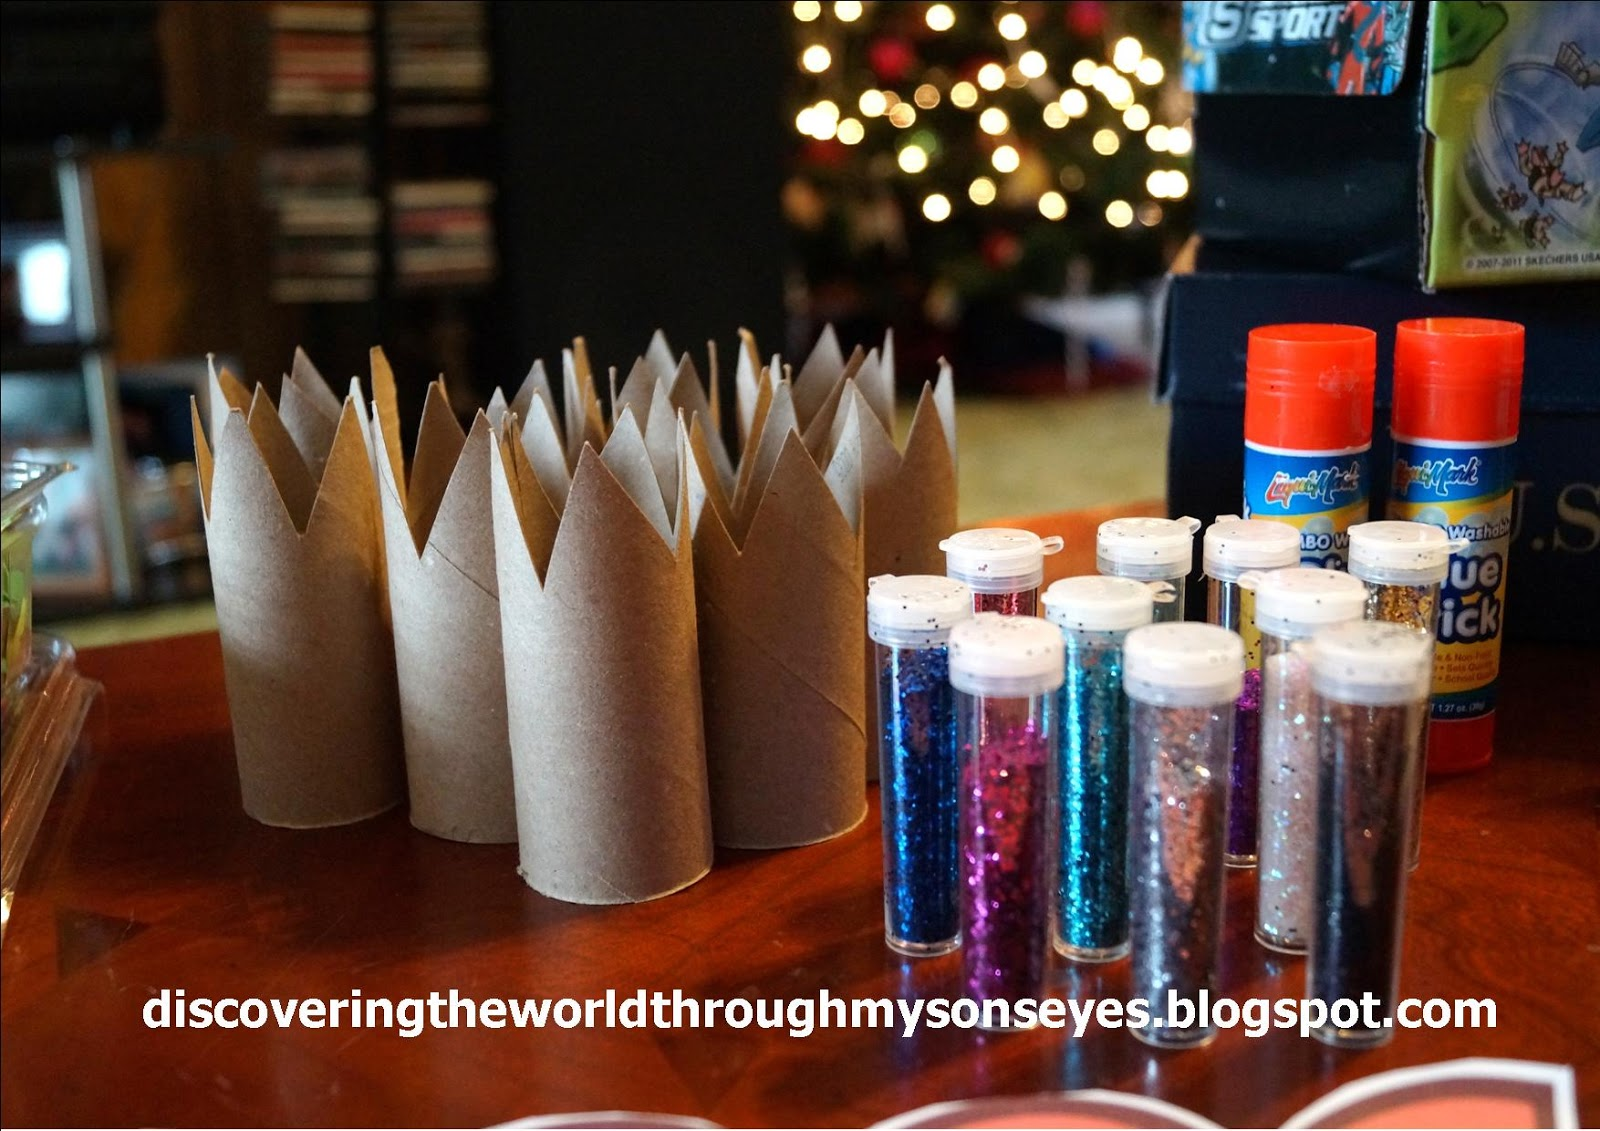 Empty Toilet Paper Rolls Cut Up As Crowns For The Children To Decorate With Glitter